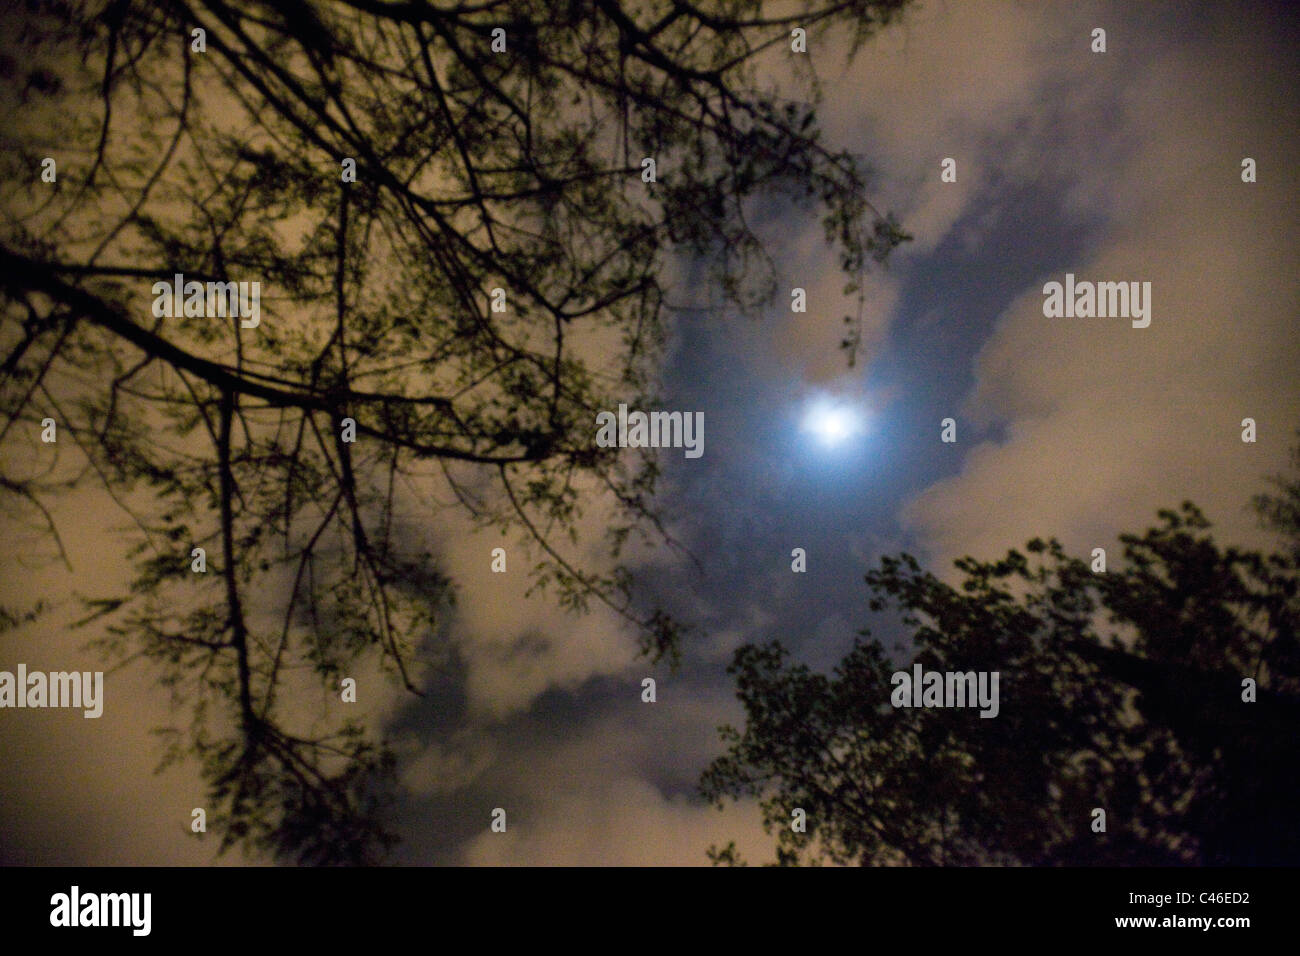 Abstract view of the night's sky - Stock Image